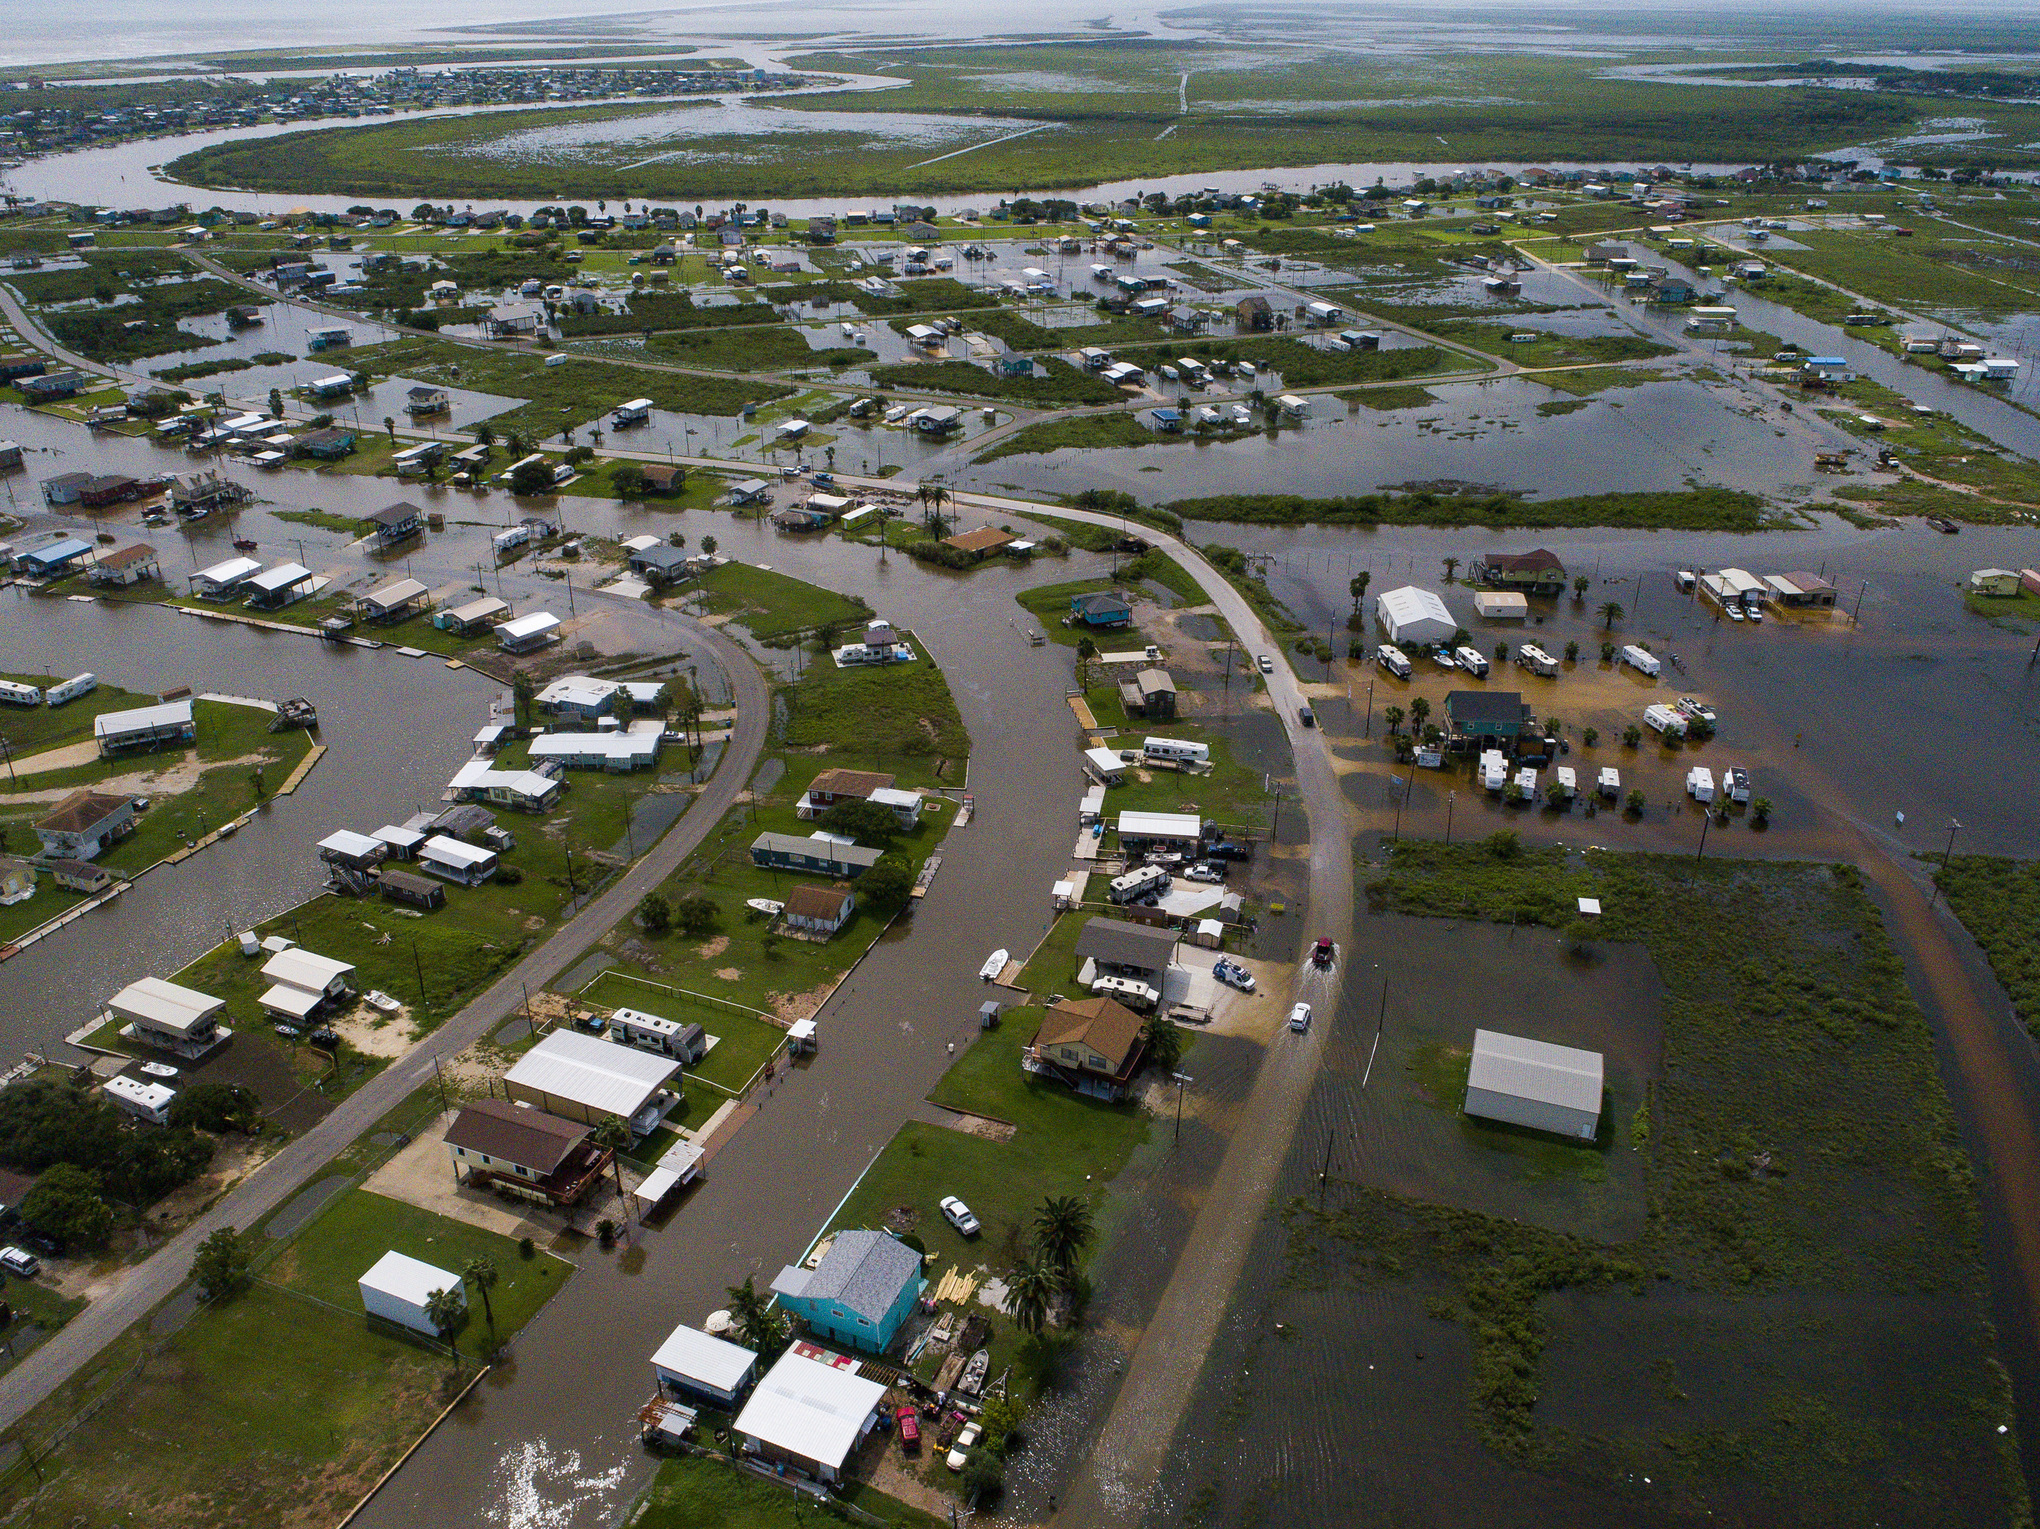 An aerial view of Sargent, Texas, which has been affected by the massive rainfall amounts dumped by Tropical Depression Imelda.